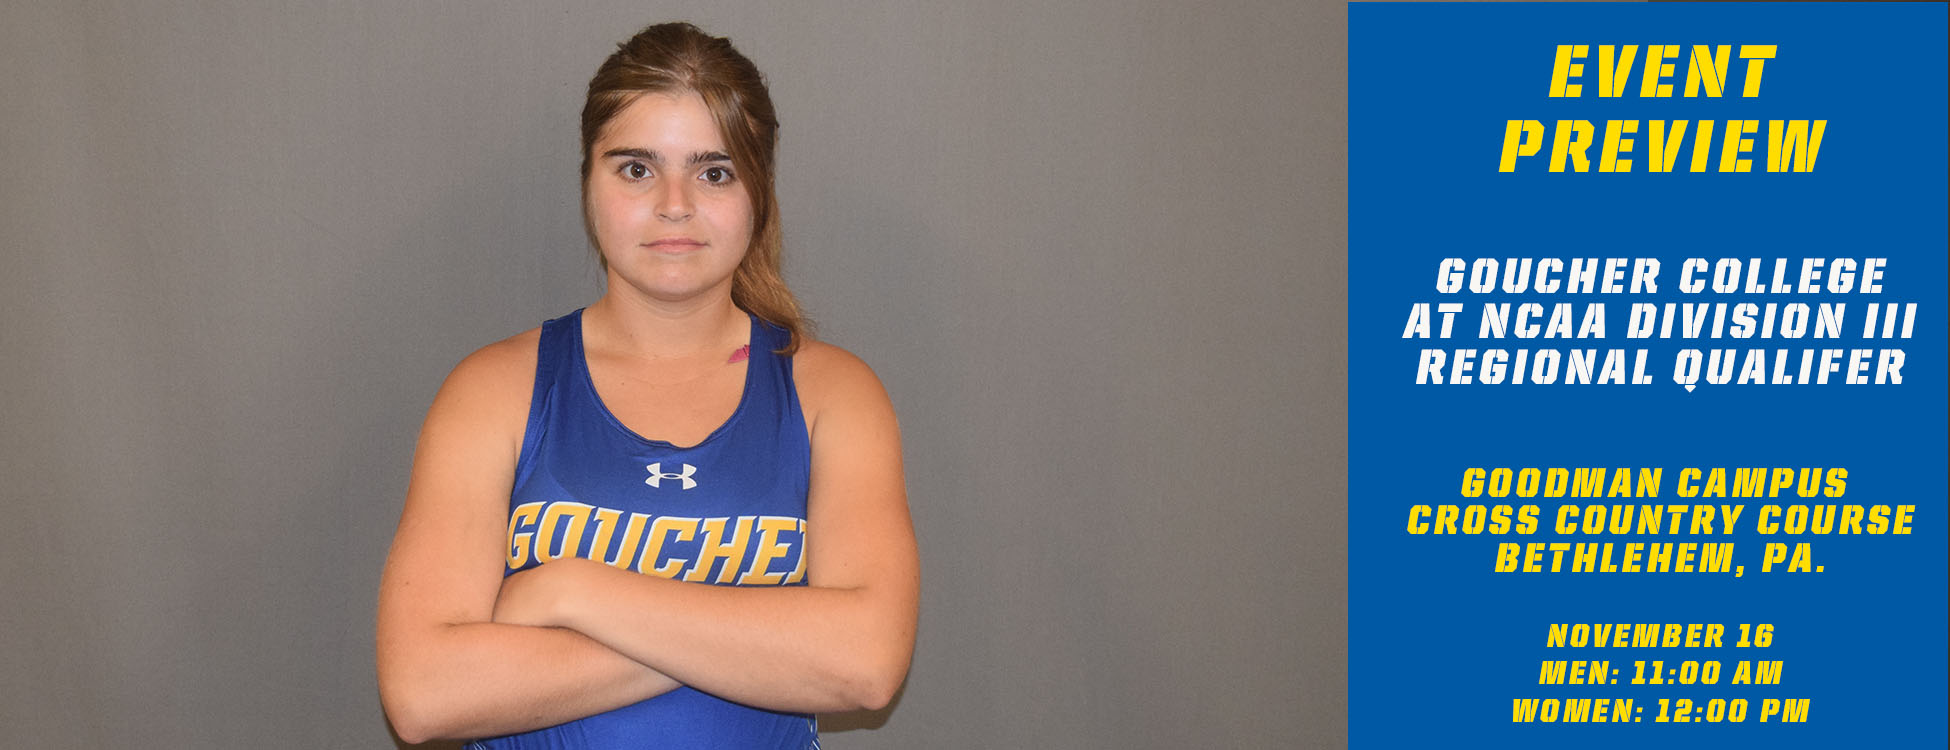 Goucher Cross Country To Participate In The NCAA Division III Regional Qualifier On Saturday In John Caslin's Final Race As Head Coach